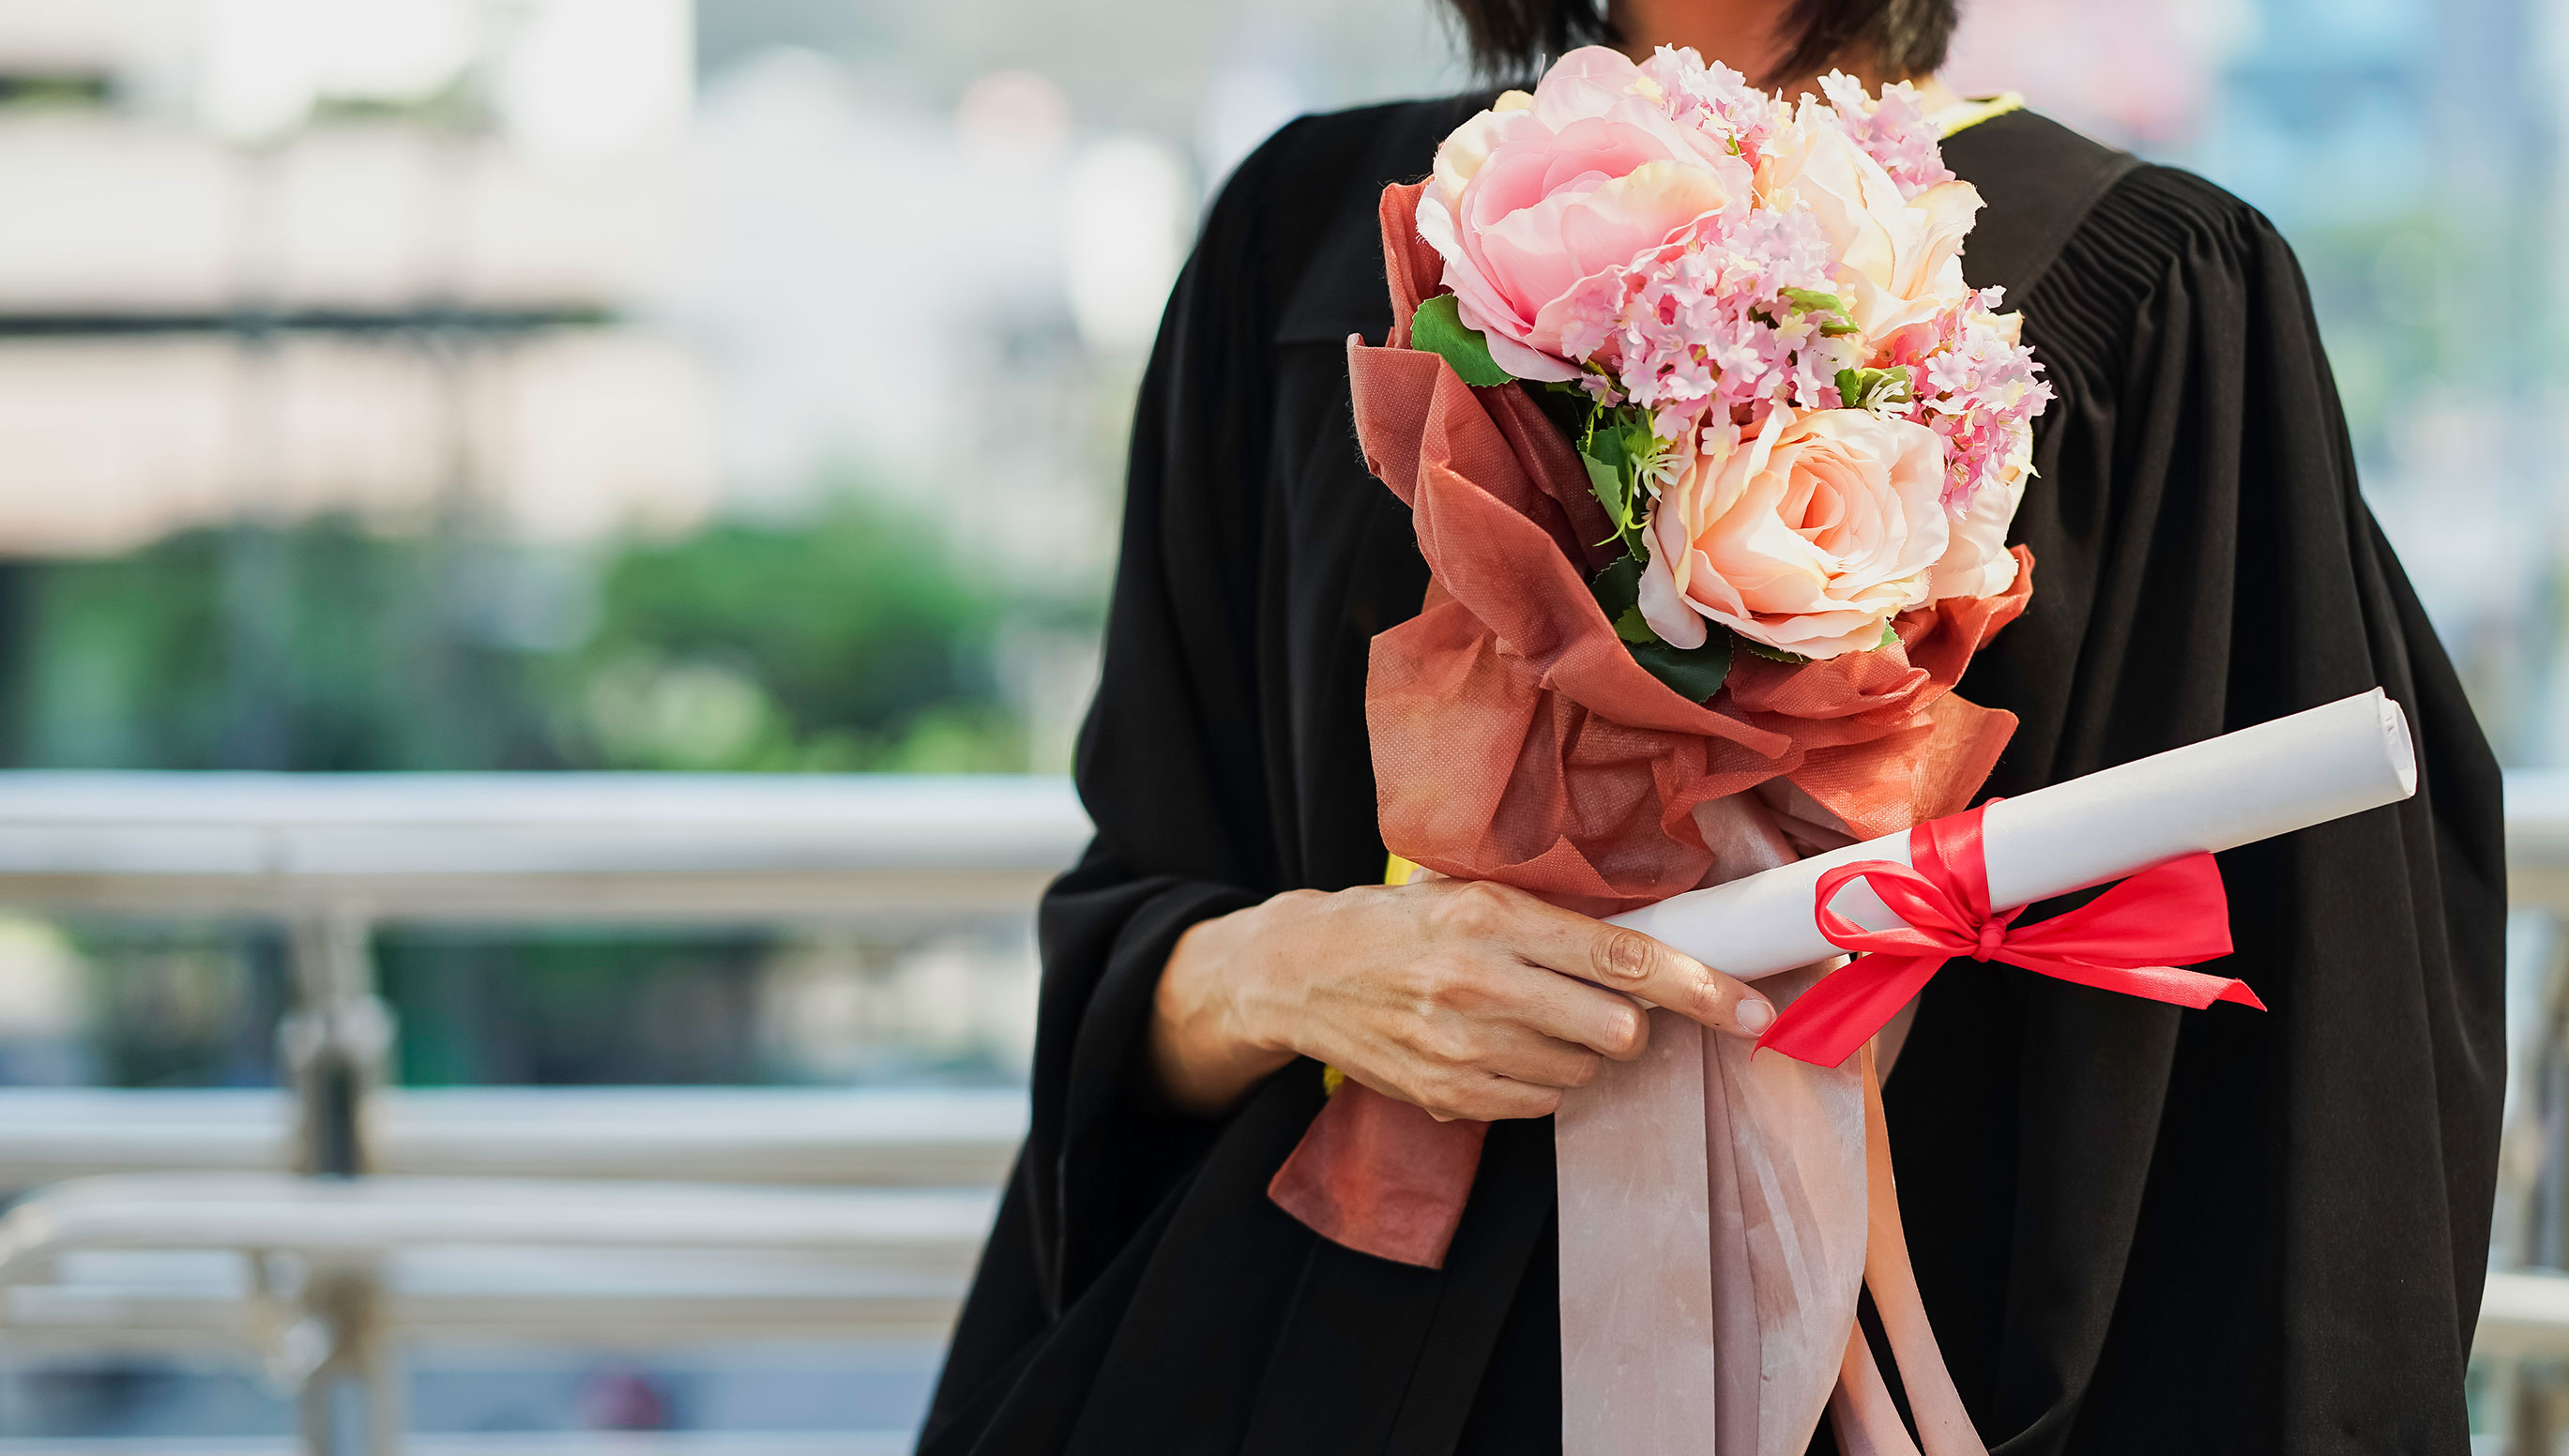 HOrdering Graduation Flowers for Your Friends